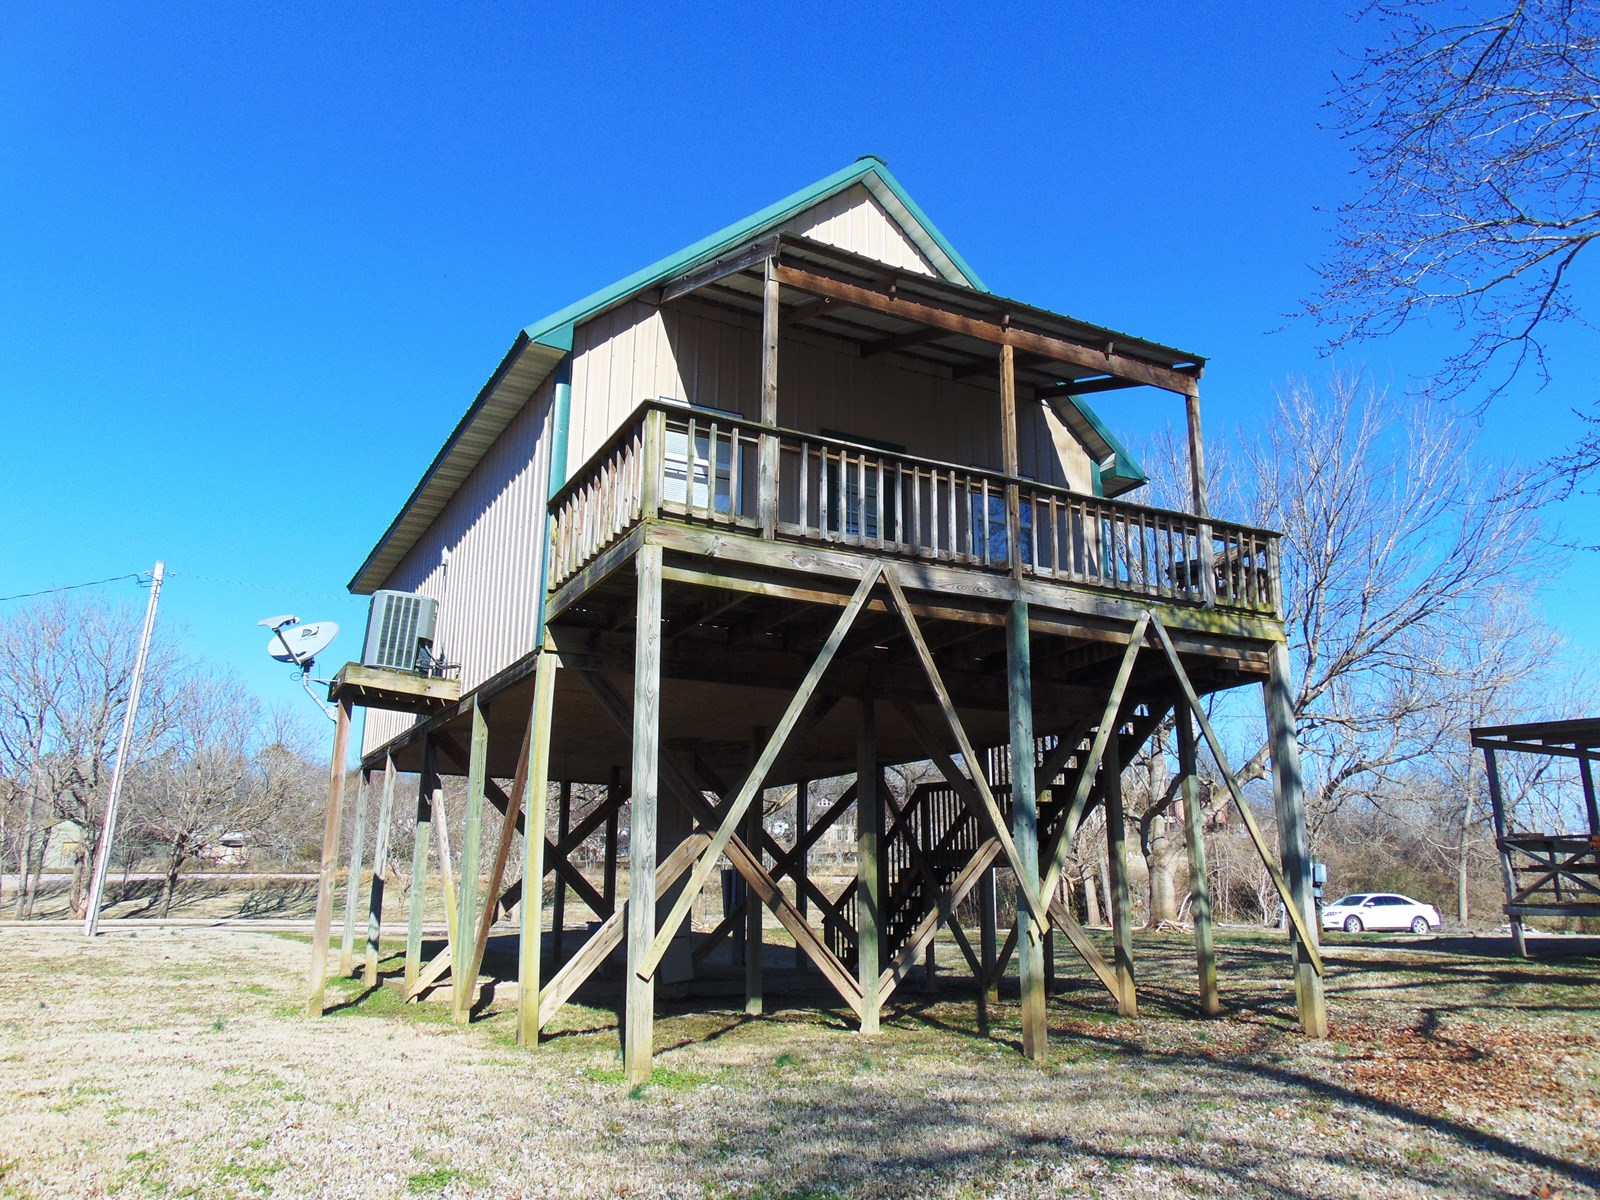 Spring River Cabin at Hardy, Arkansas for sale